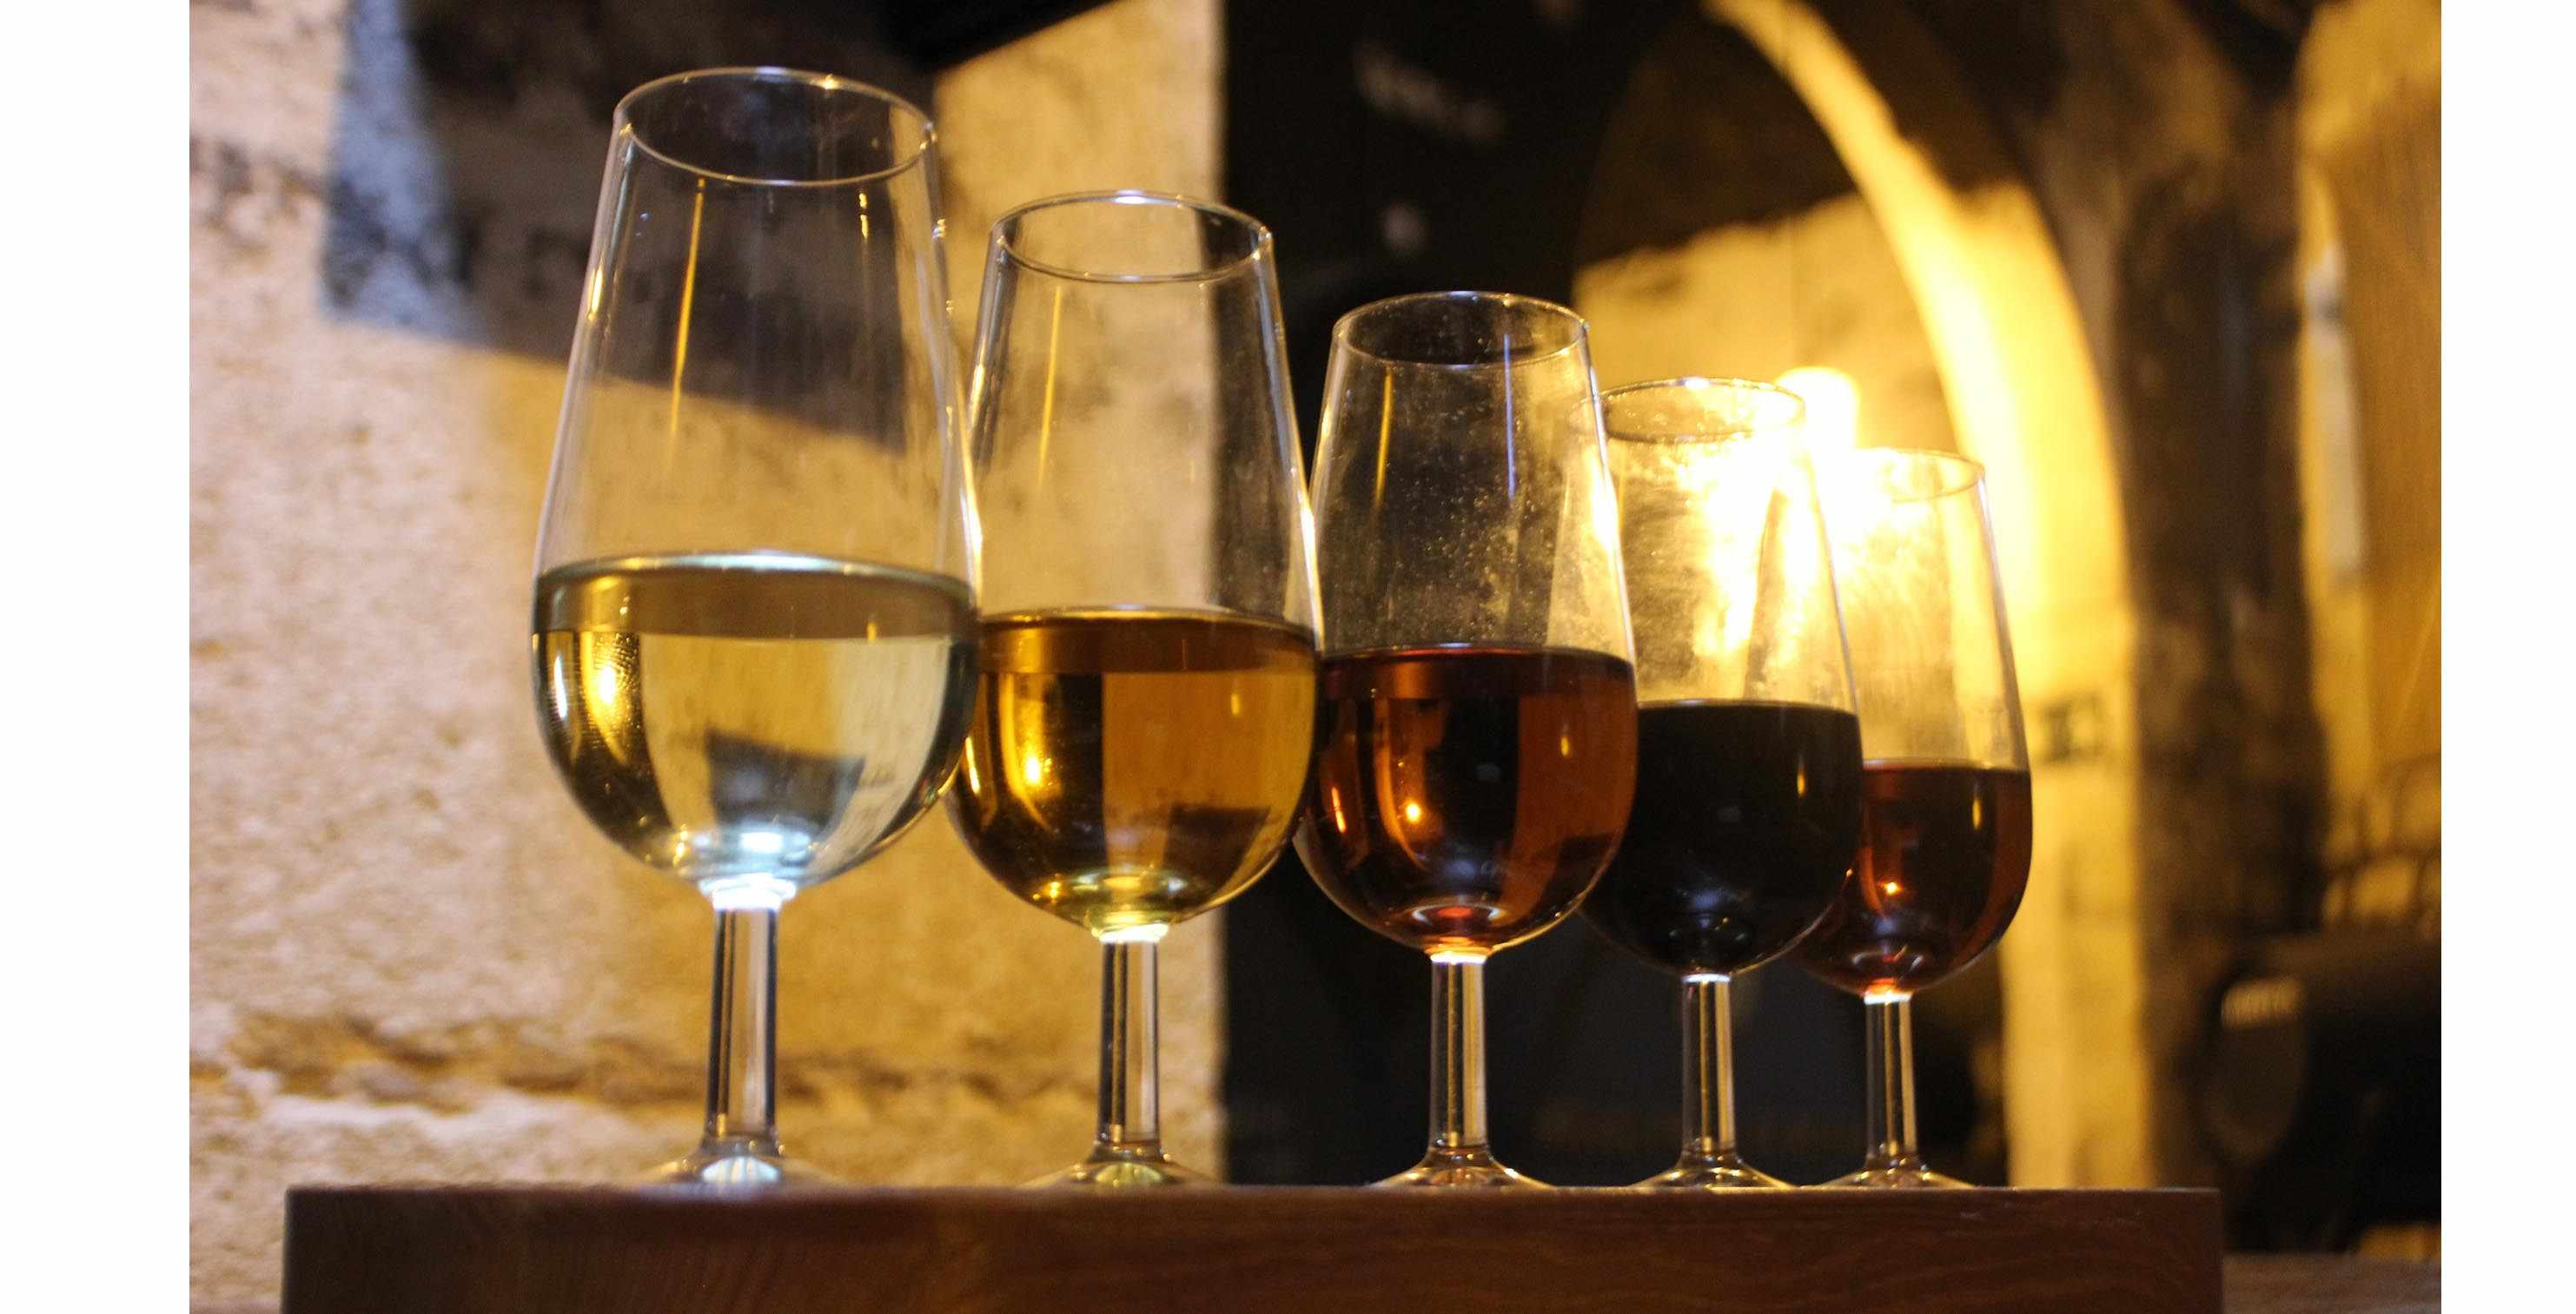 Sherry selection